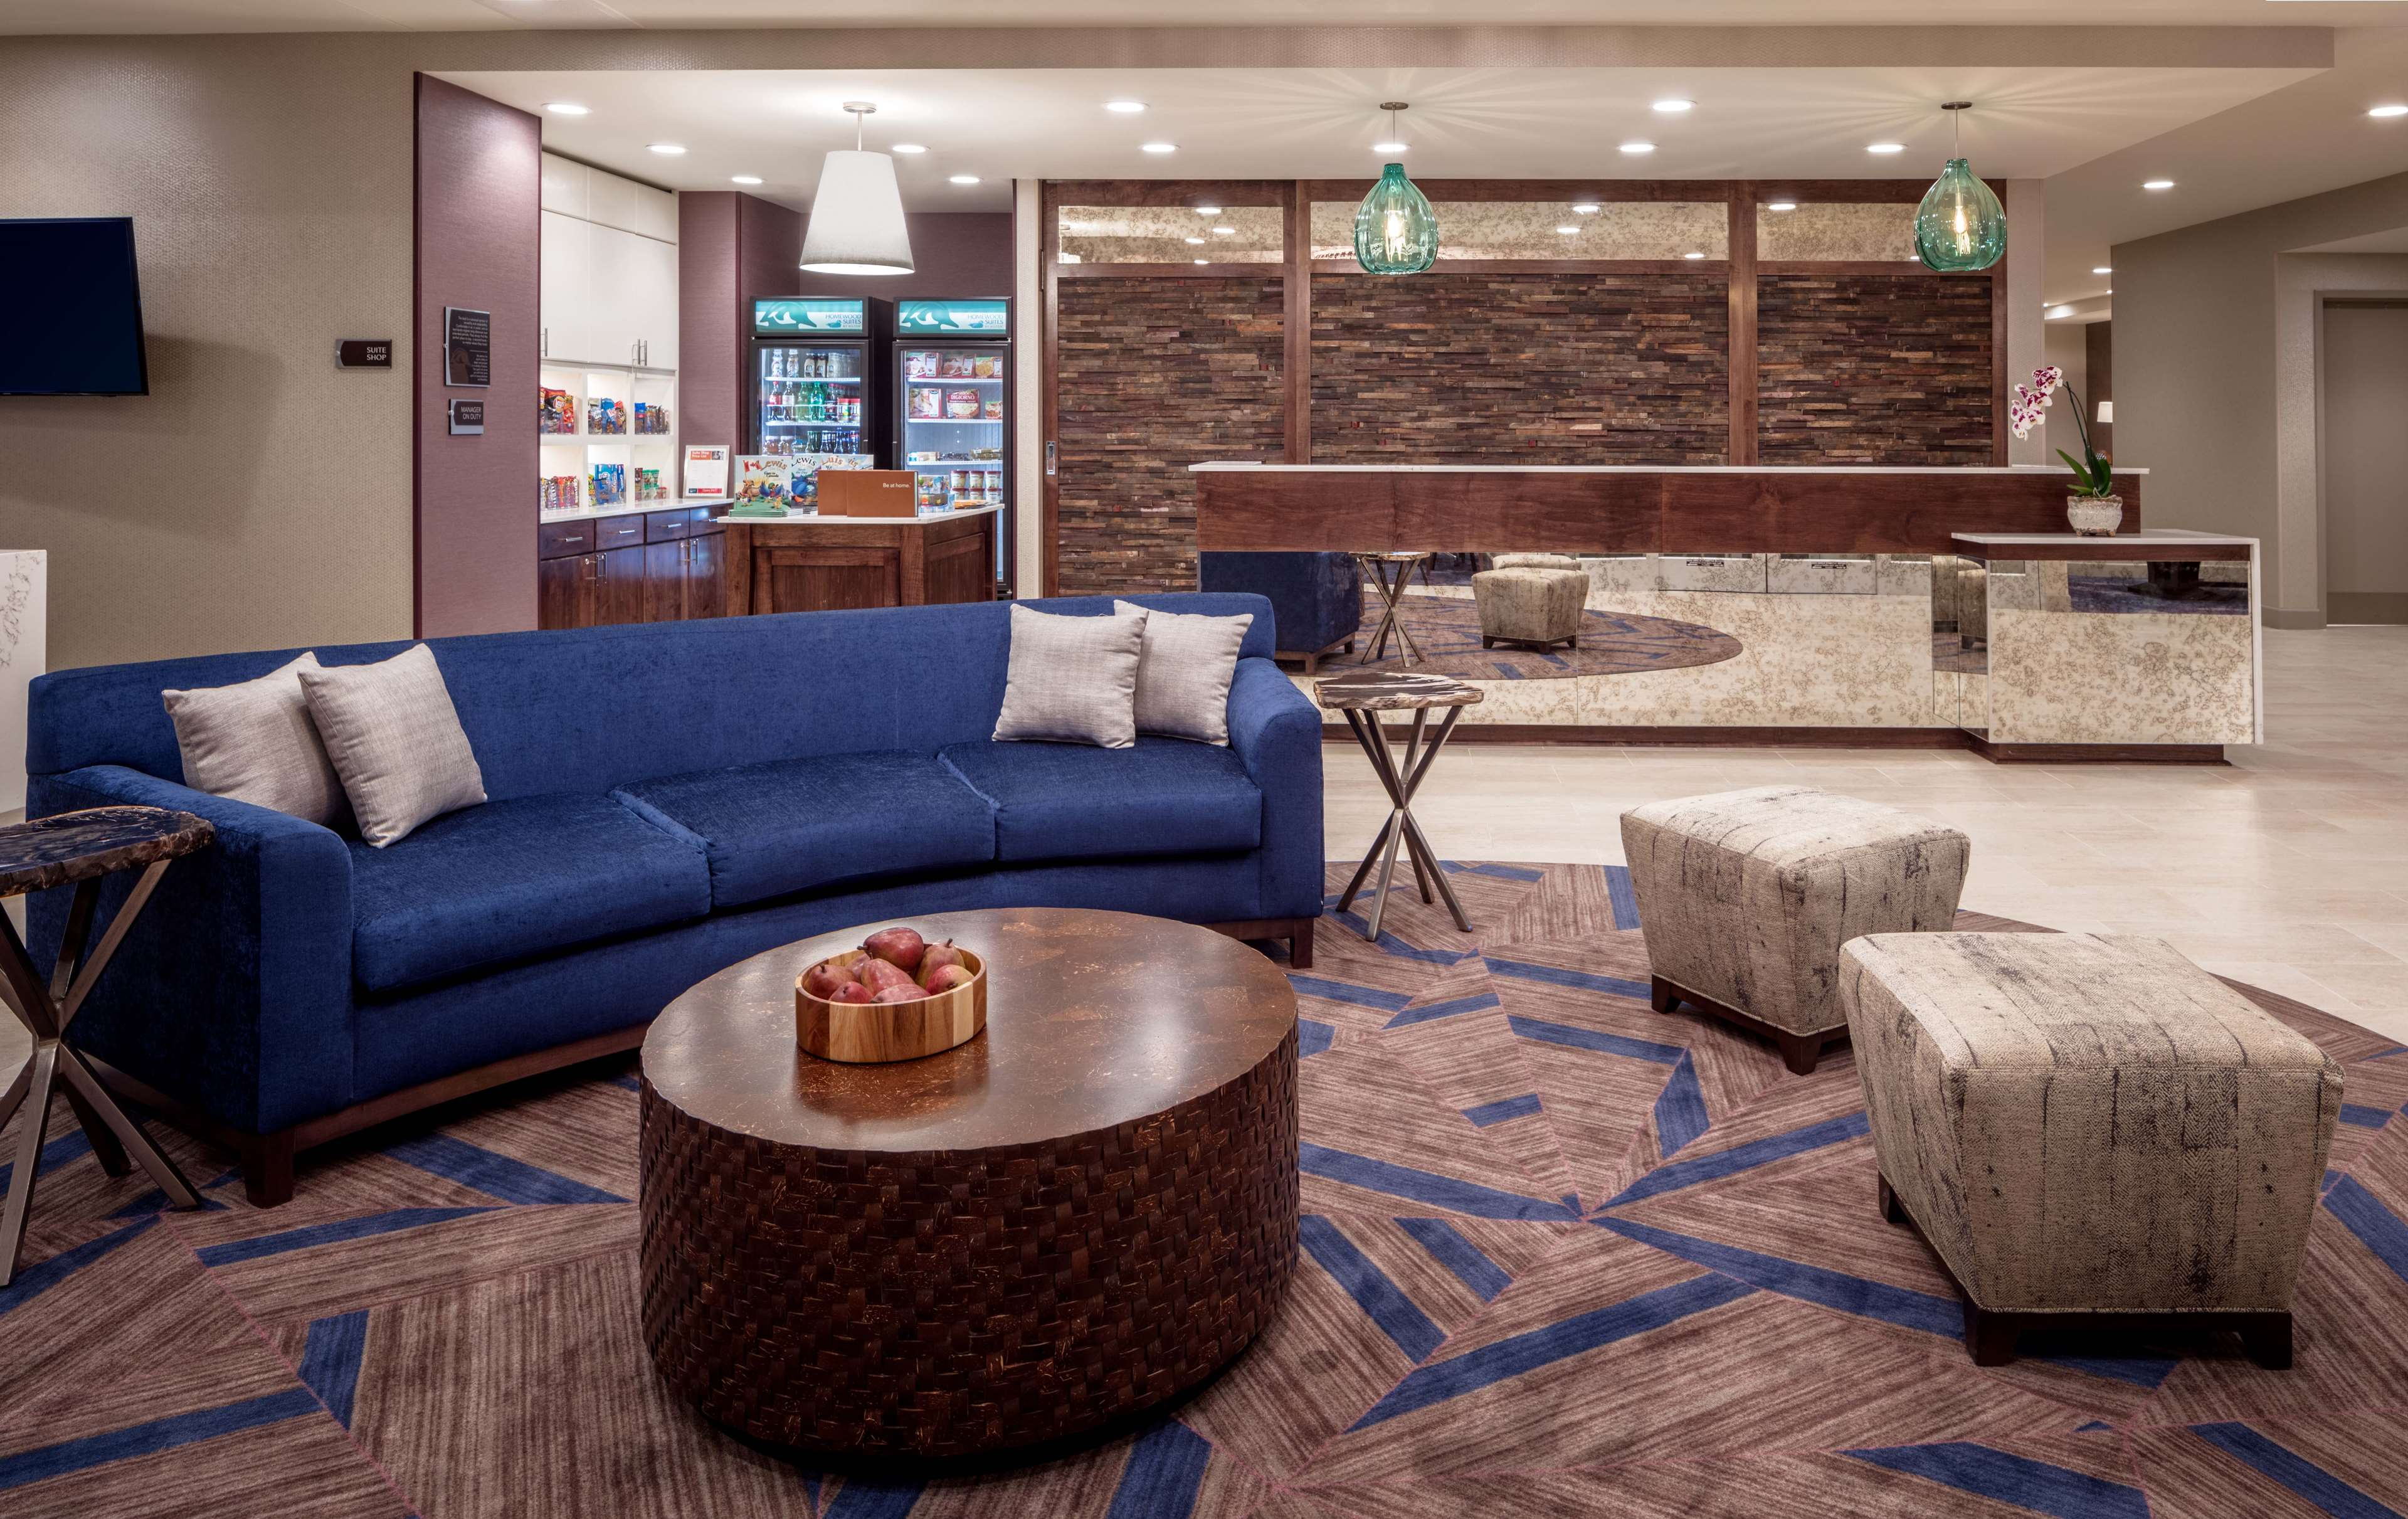 Homewood Suites by Hilton New Orleans French Quarter image 8